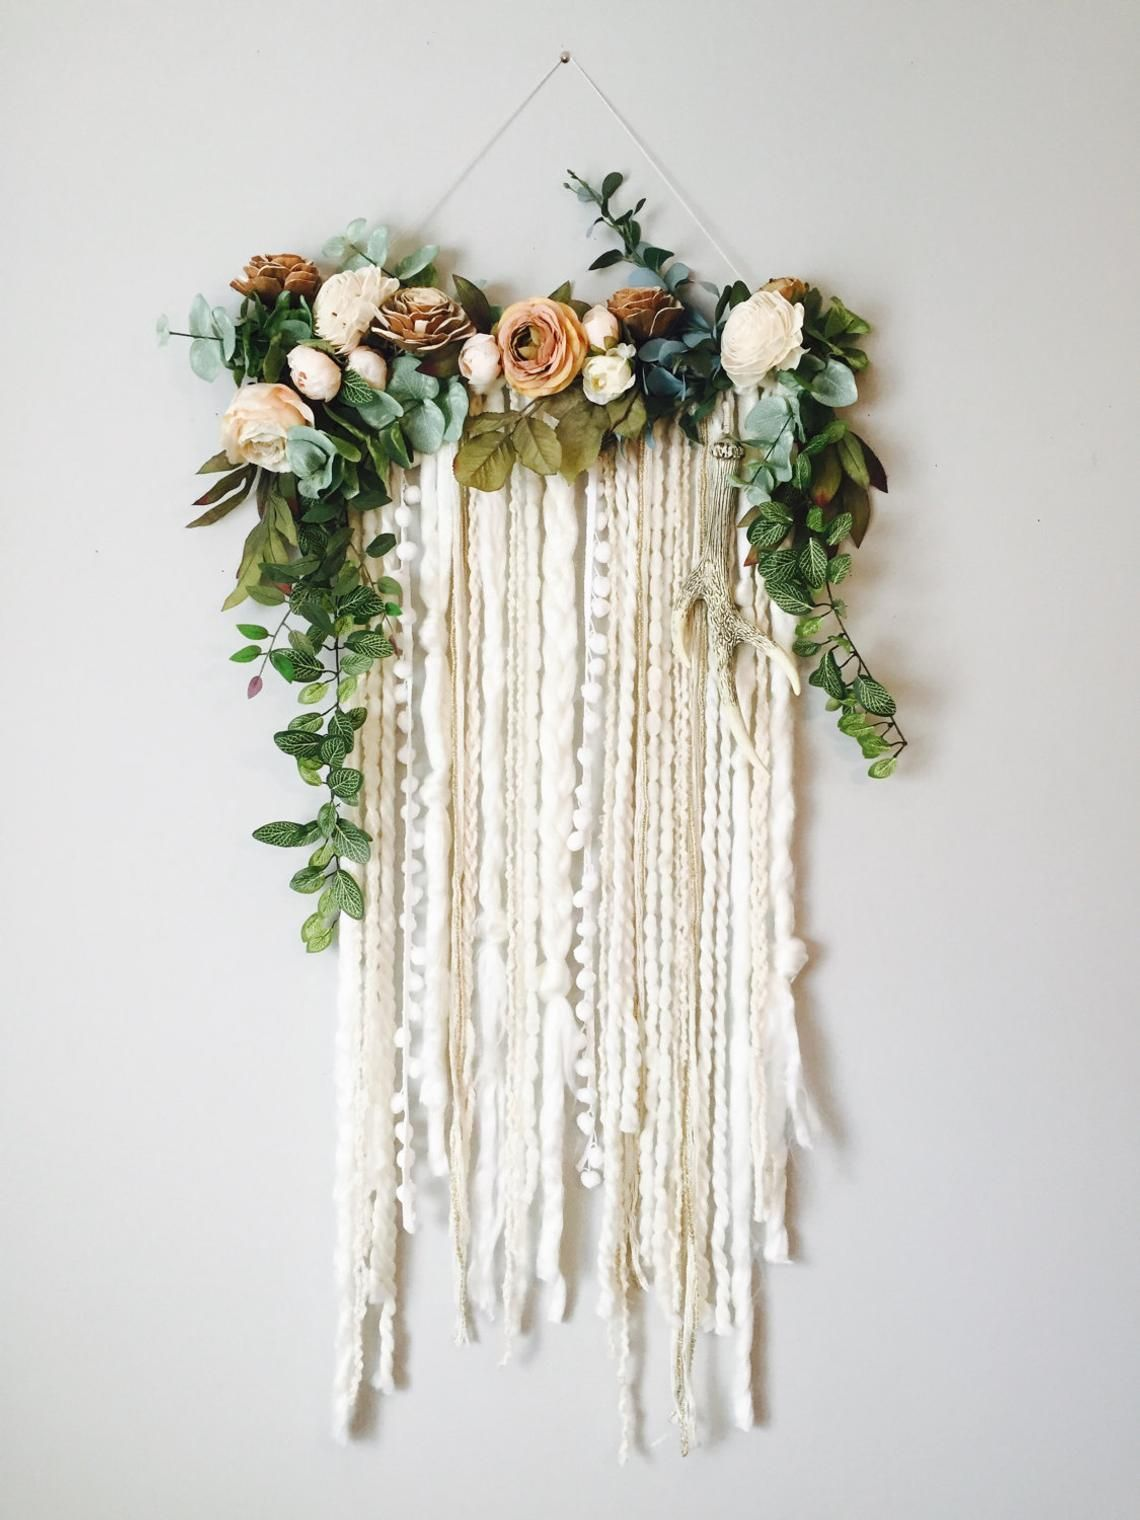 Wall Hanging Floral Wall Hanging Flower Wall Art Large Wall Hanging Modern Wall Hanging Flower Wal In 2020 Hanging Flower Wall Flower Wall Decor Yarn Wall Hanging